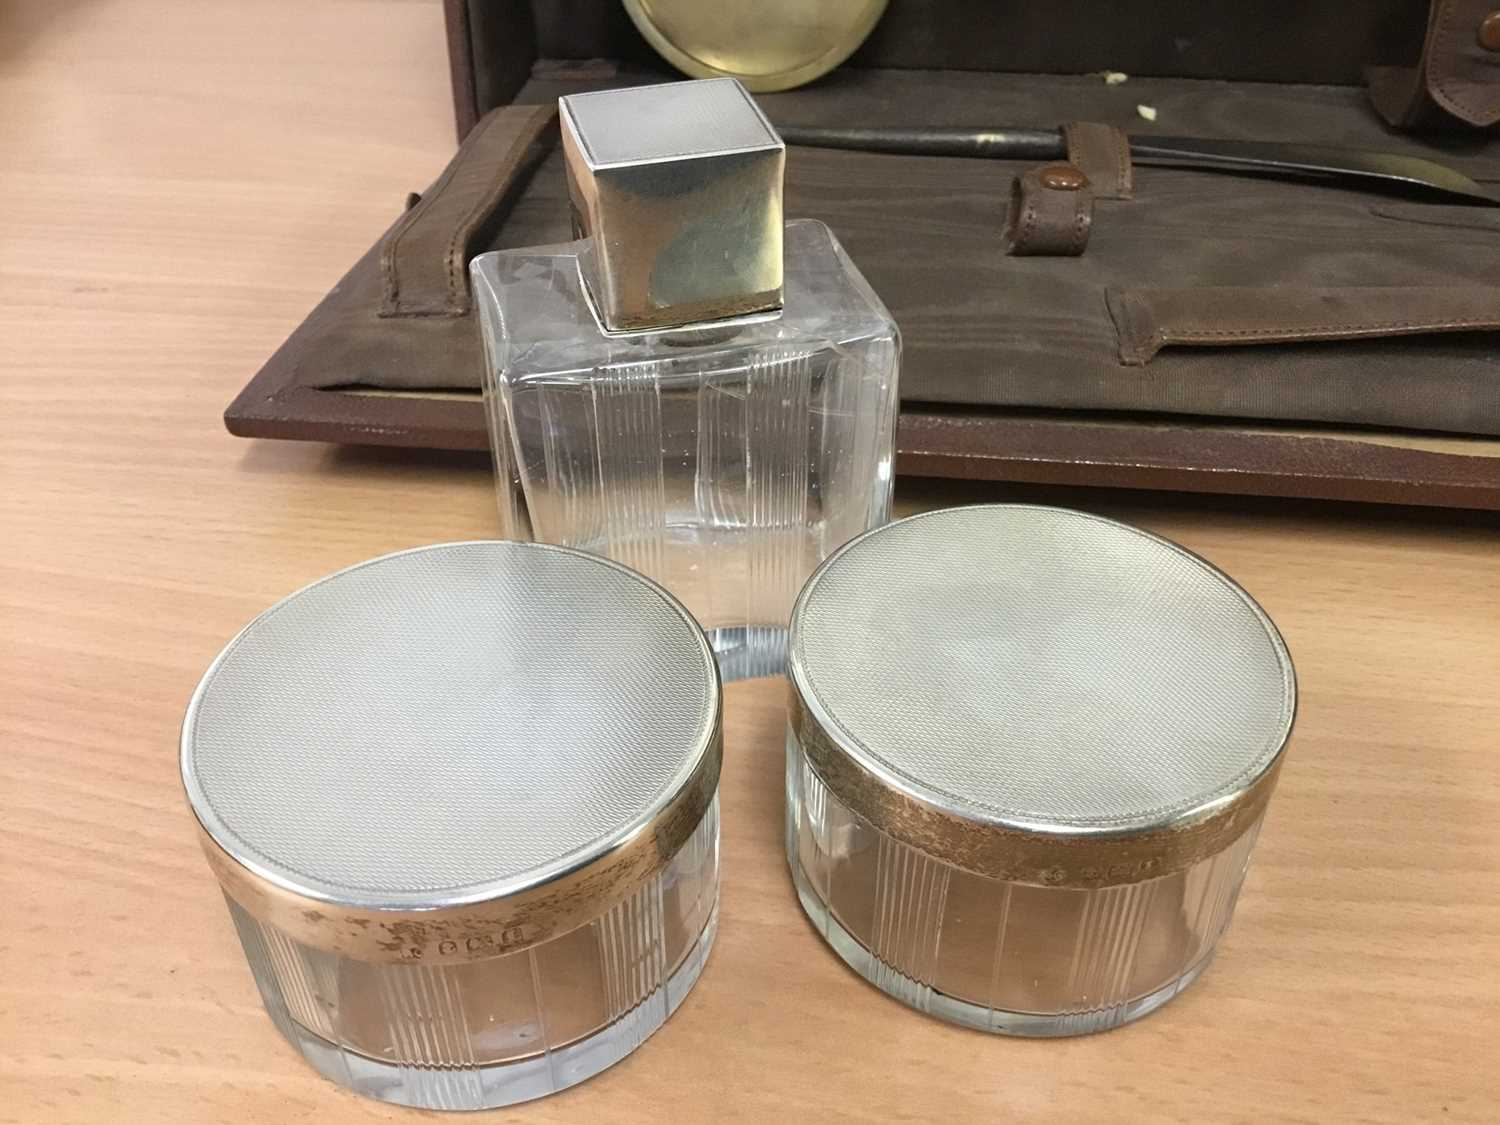 Lot 288 - Early 20th century silver mounted and glass toiletry set in original fitted case, together with anot